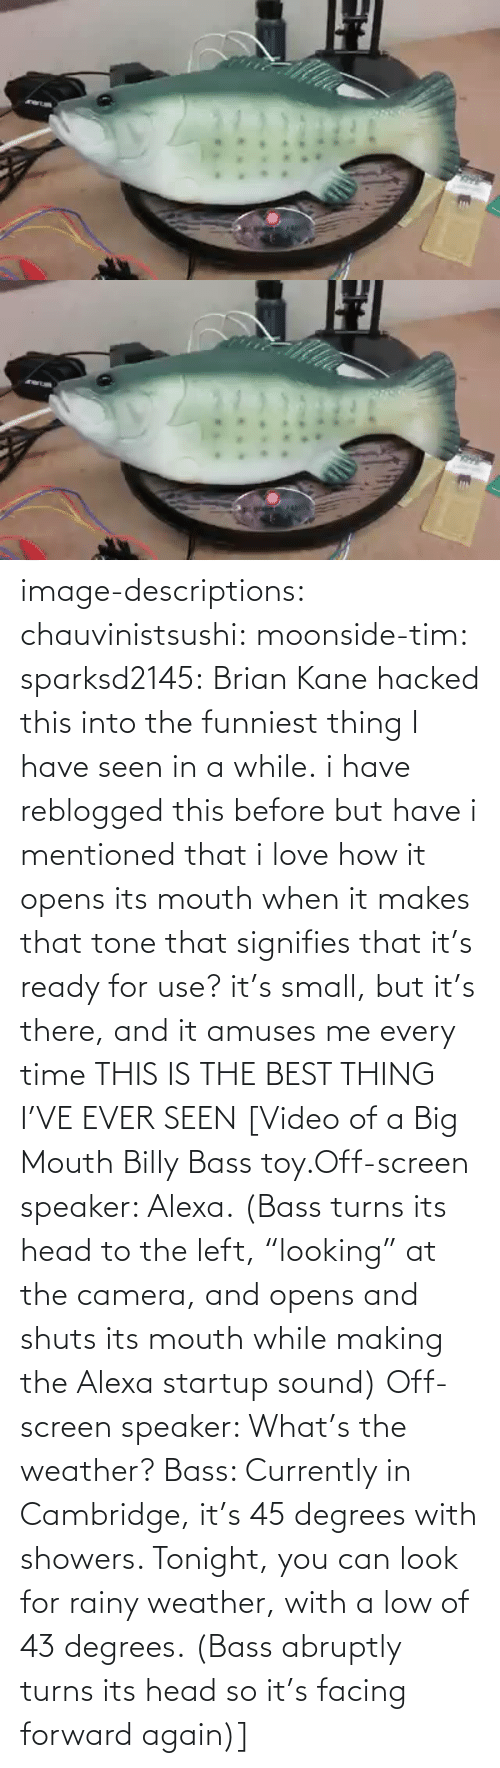 "there: image-descriptions:  chauvinistsushi:  moonside-tim:  sparksd2145:  Brian Kane hacked this into the funniest thing I have seen in a while.  i have reblogged this before but have i mentioned that i love how it opens its mouth when it makes that tone that signifies that it's ready for use? it's small, but it's there, and it amuses me every time  THIS IS THE BEST THING I'VE EVER SEEN  [Video of a Big Mouth Billy Bass toy.Off-screen speaker: Alexa. (Bass turns its head to the left, ""looking"" at the camera, and opens and shuts its mouth while making the Alexa startup sound)  Off-screen speaker: What's the weather? Bass: Currently in Cambridge, it's 45 degrees with showers. Tonight, you can look for rainy weather, with a low of 43 degrees. (Bass abruptly turns its head so it's facing forward again)]"